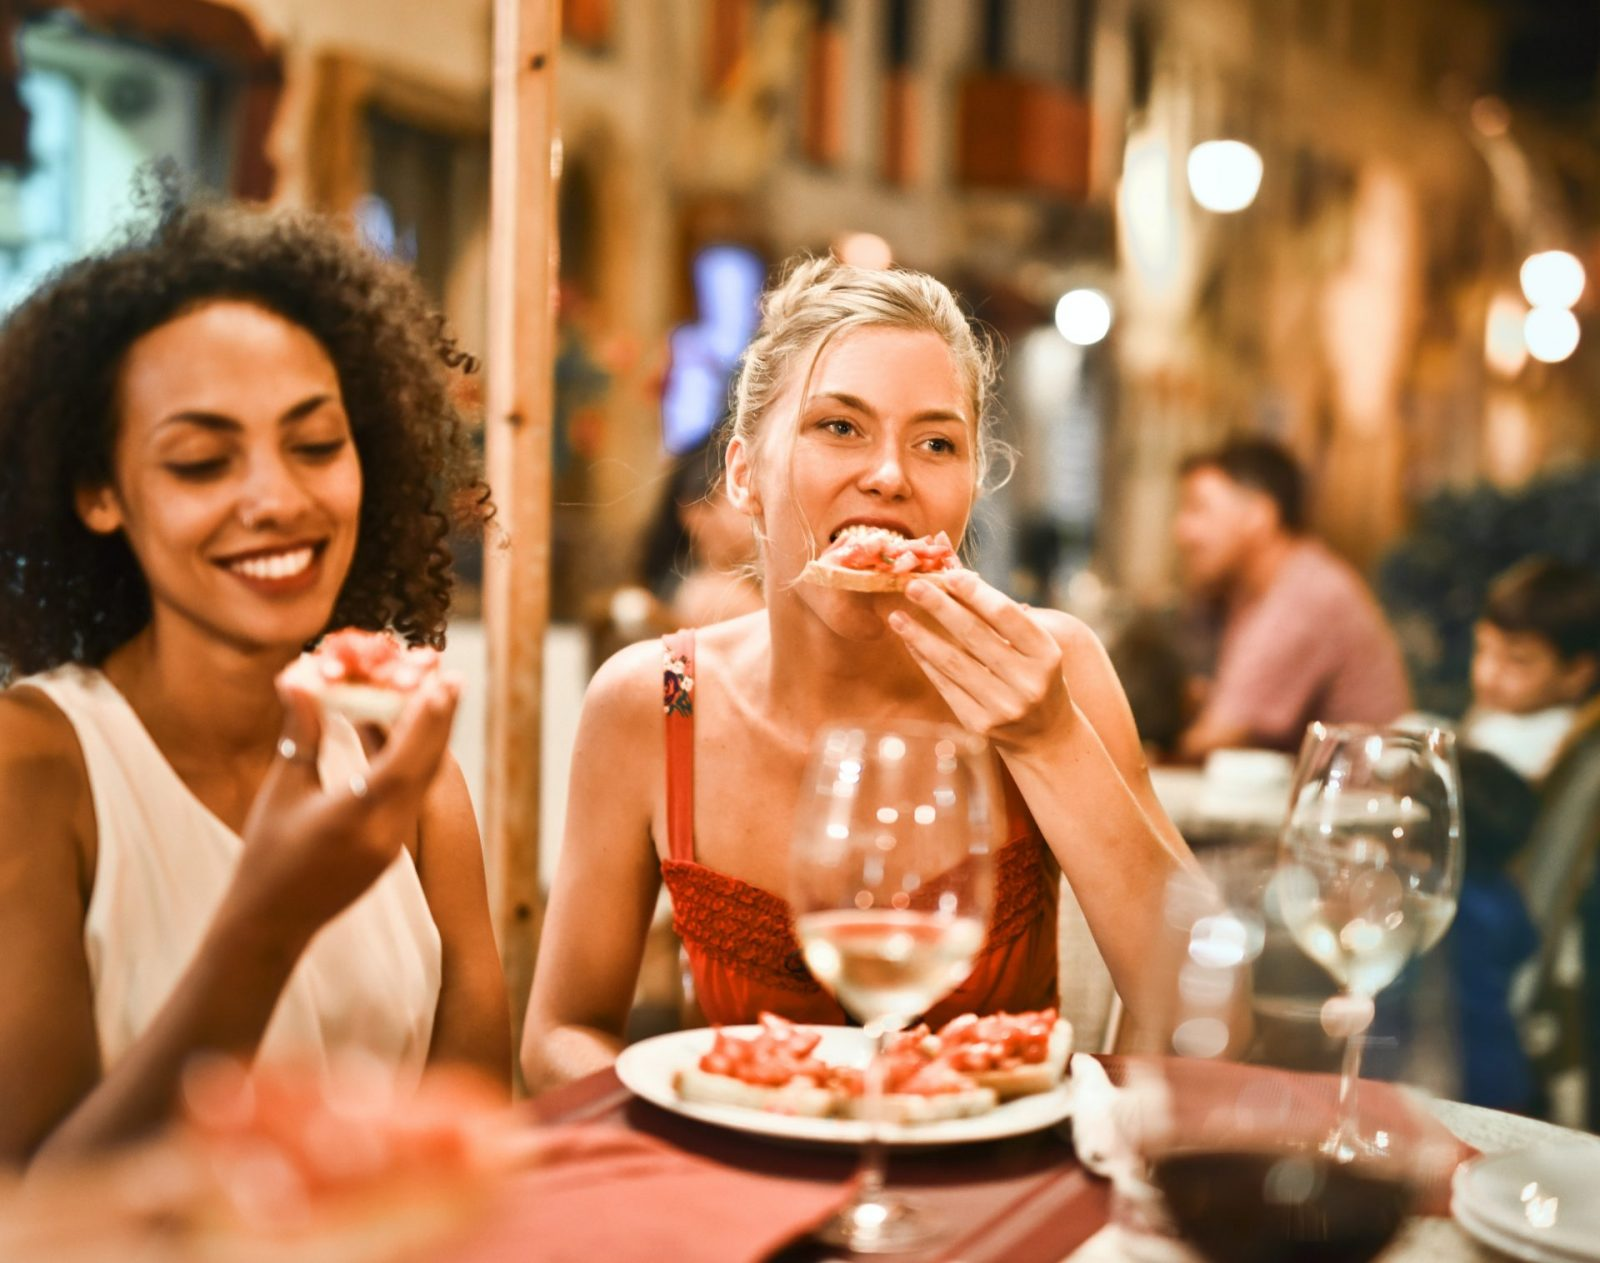 Eating dinner early is great for health